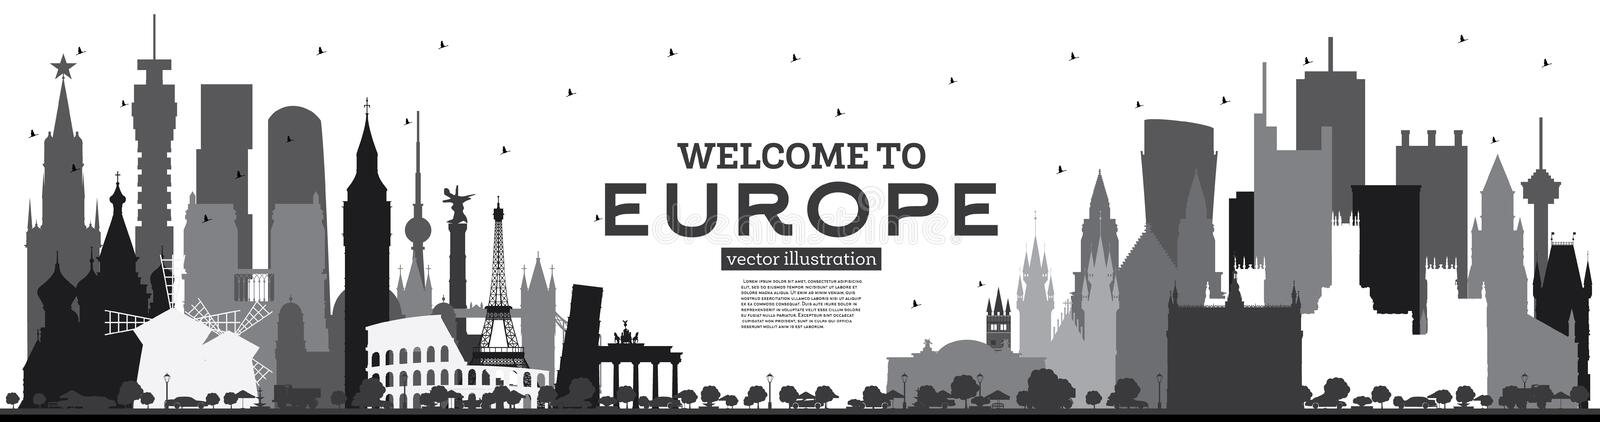 Welcome to Europe Skyline Silhouette with Black Buildings Isolated on White. Vector Illustration. Tourism Concept with Historic Architecture. Europe Cityscape vector illustration